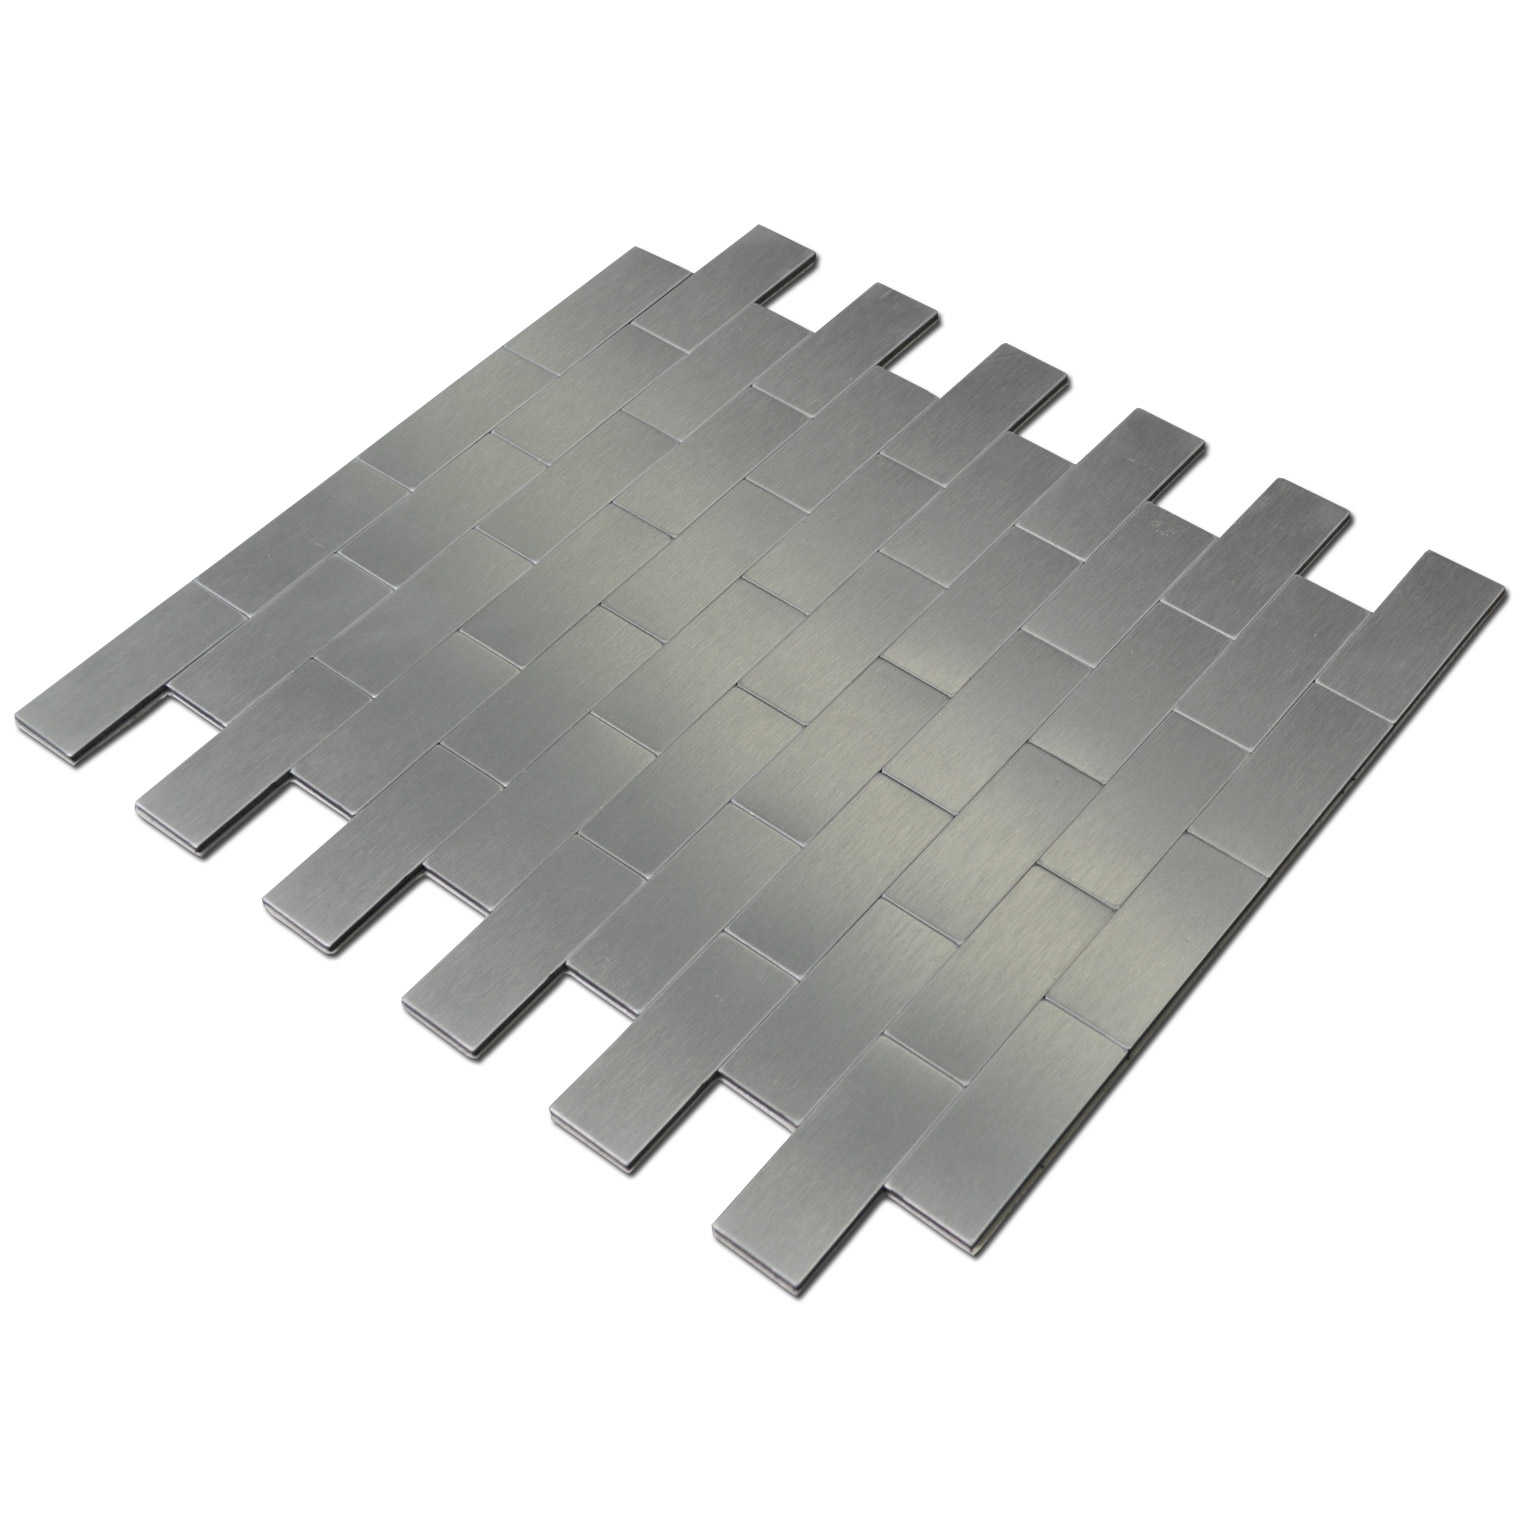 Peel and Stick Metal Backsplash Tile for Kitchen, 12' x 12' Silver(10 Pack)